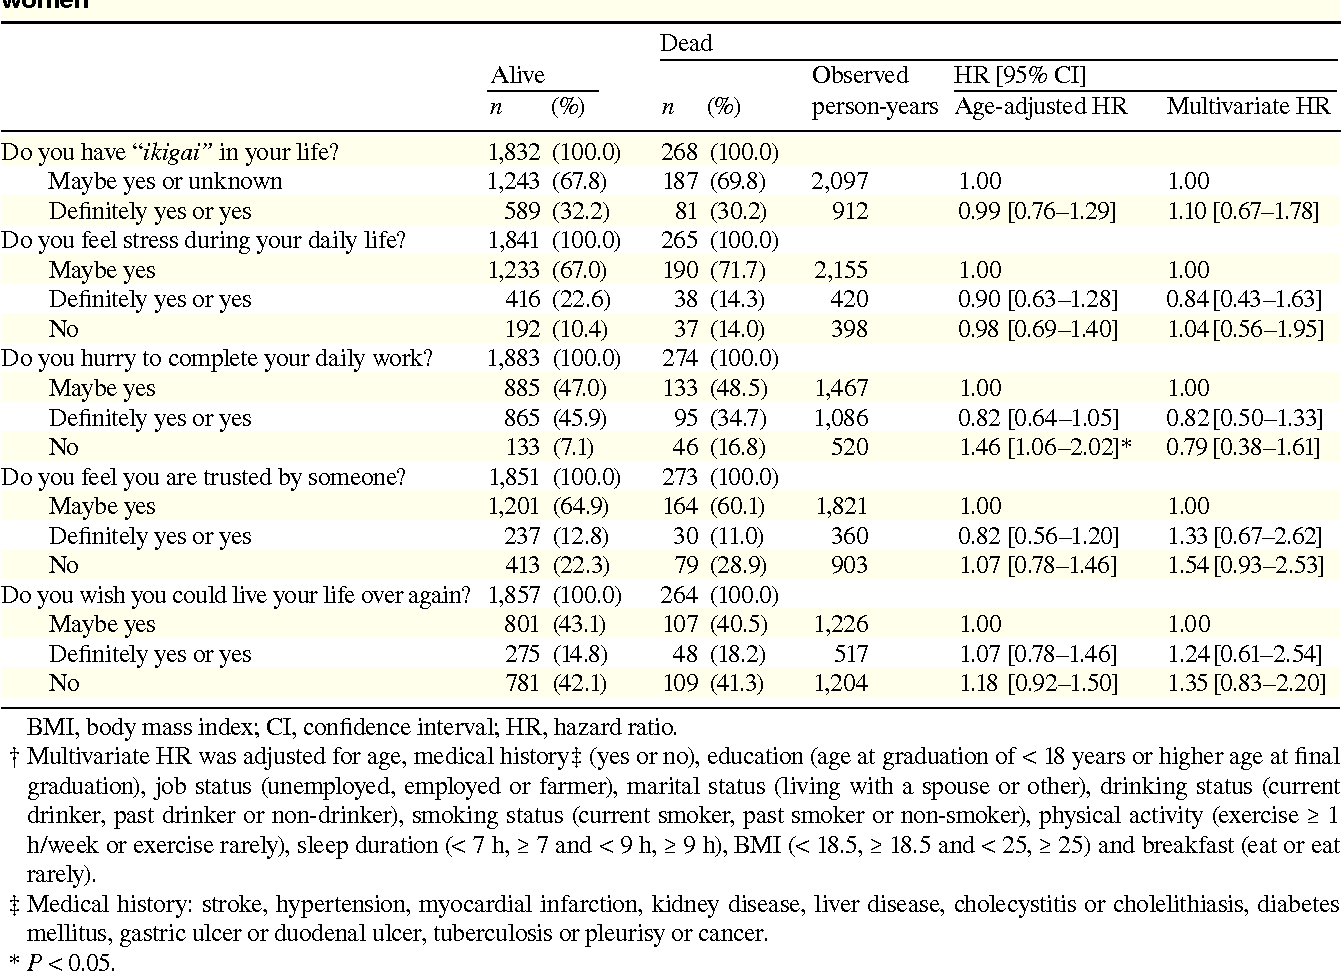 Table 8. Age-adjusted and multivariate HRs and 95% CIs for death according to psychological factors among women